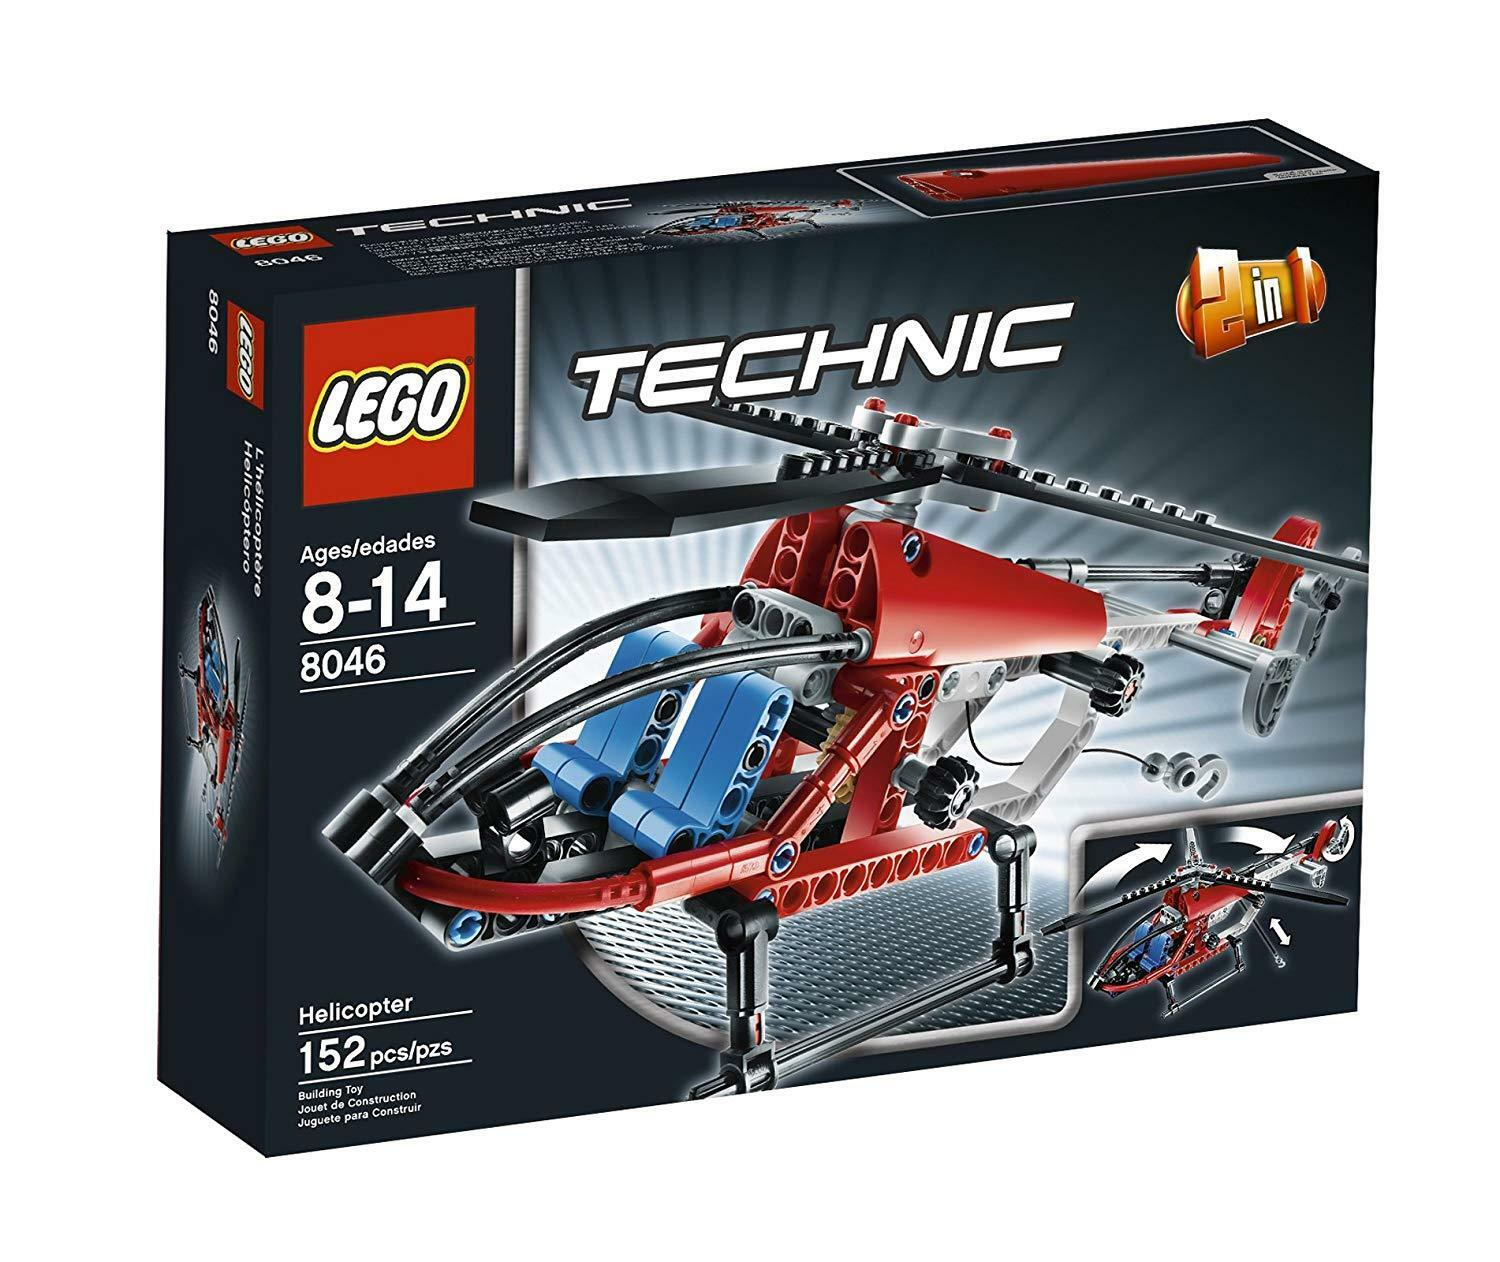 LEGO TECHNIC Helicopter 8046 - retired